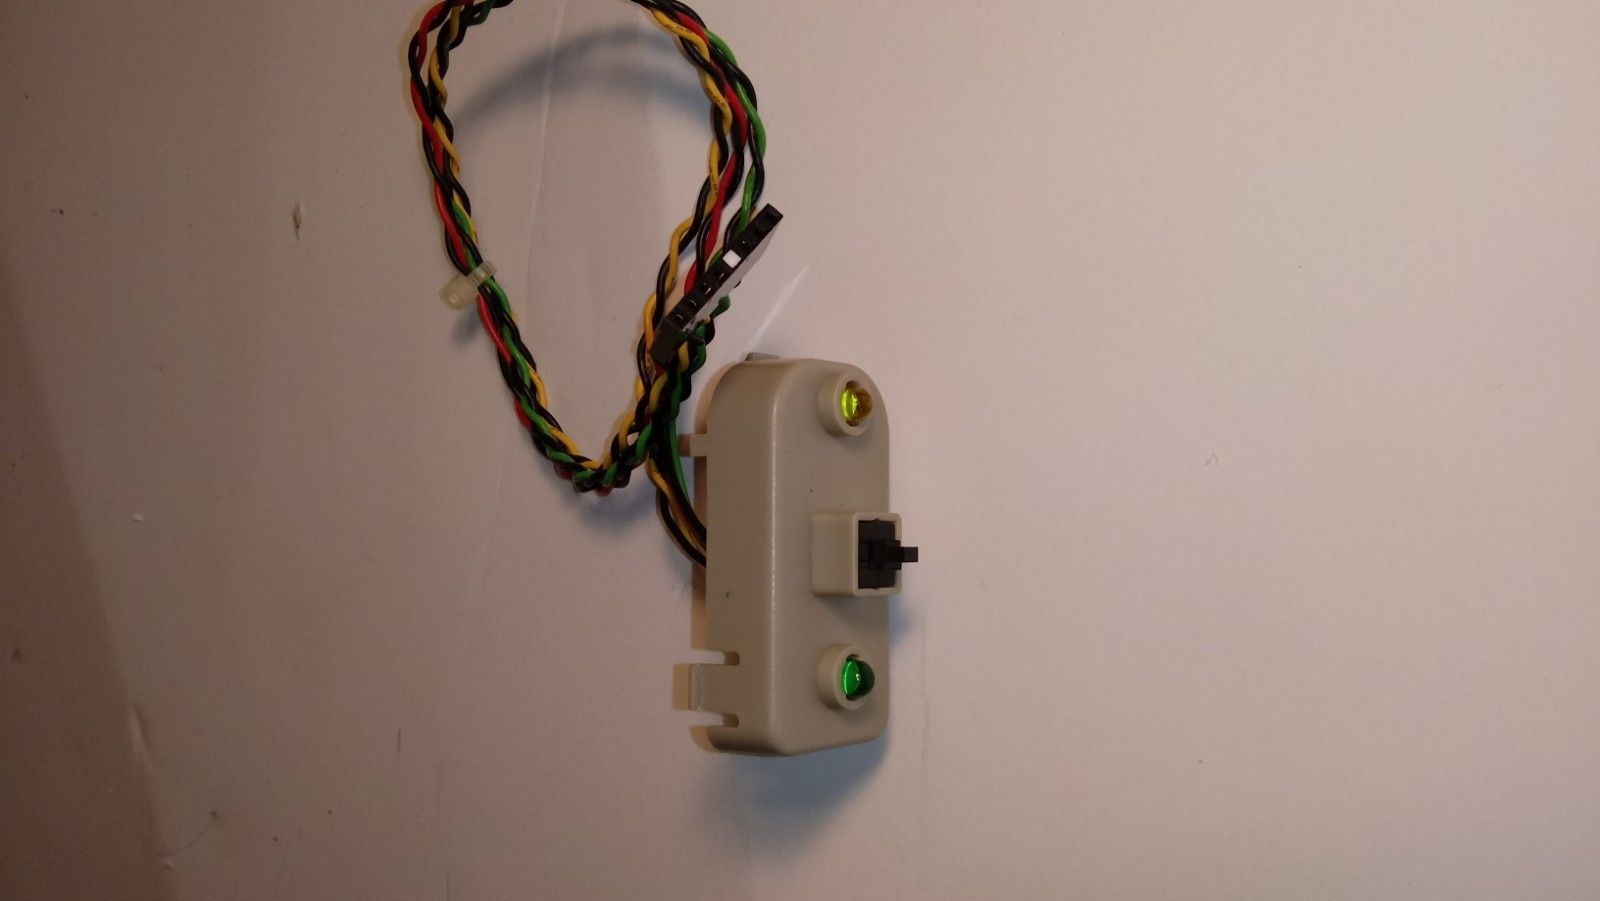 HP 5064-0346 Power SW/LED Power Switch and 40 similar items